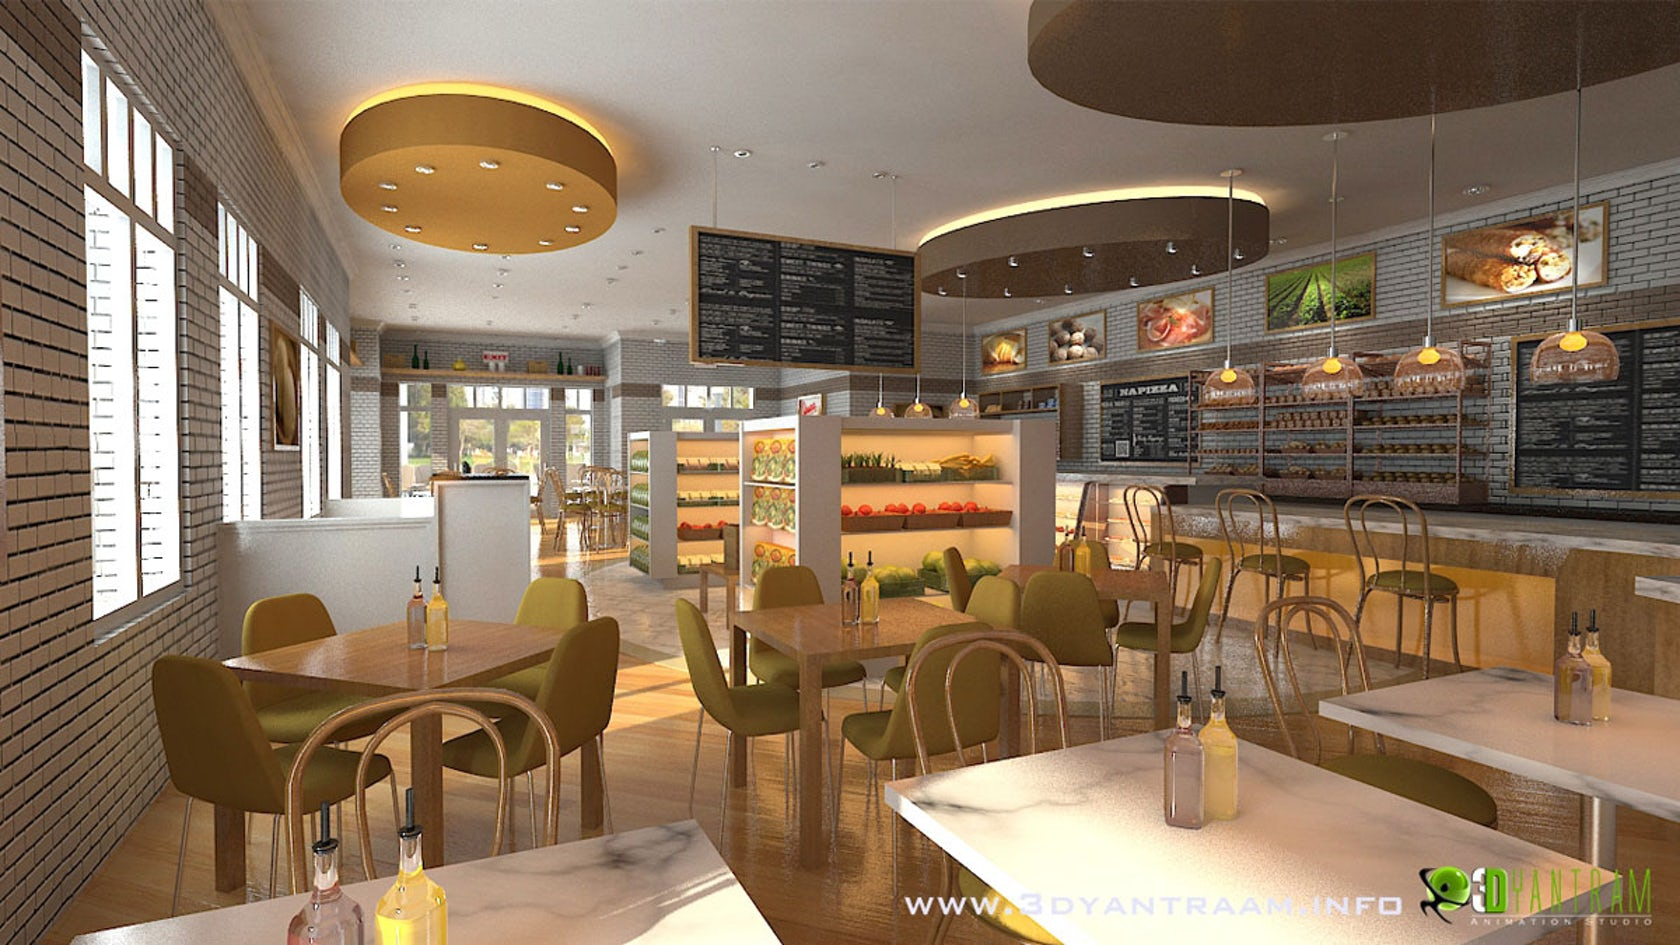 Interesting d cgi design for food court architizer